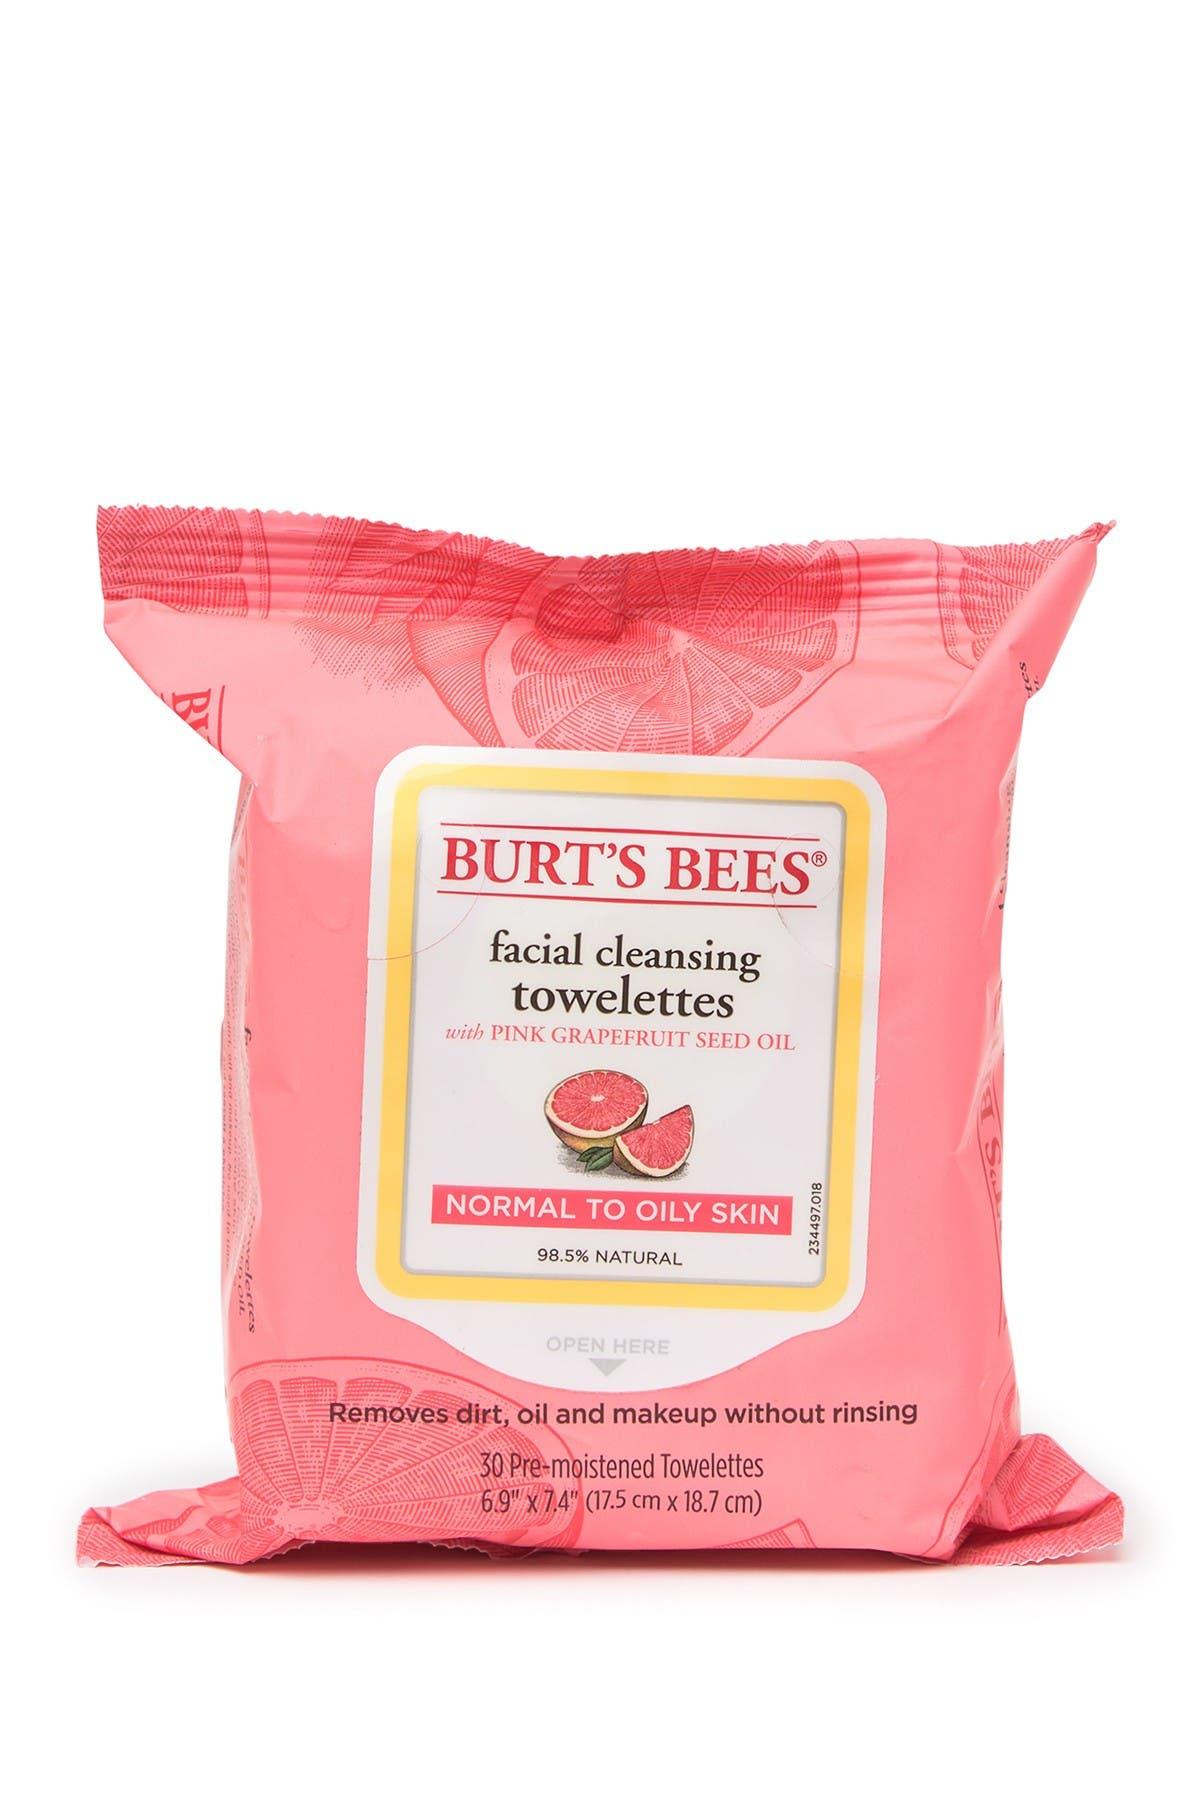 Image of BURT'S BEES Facial Cleansing Towelettes - Pink Grapefruit